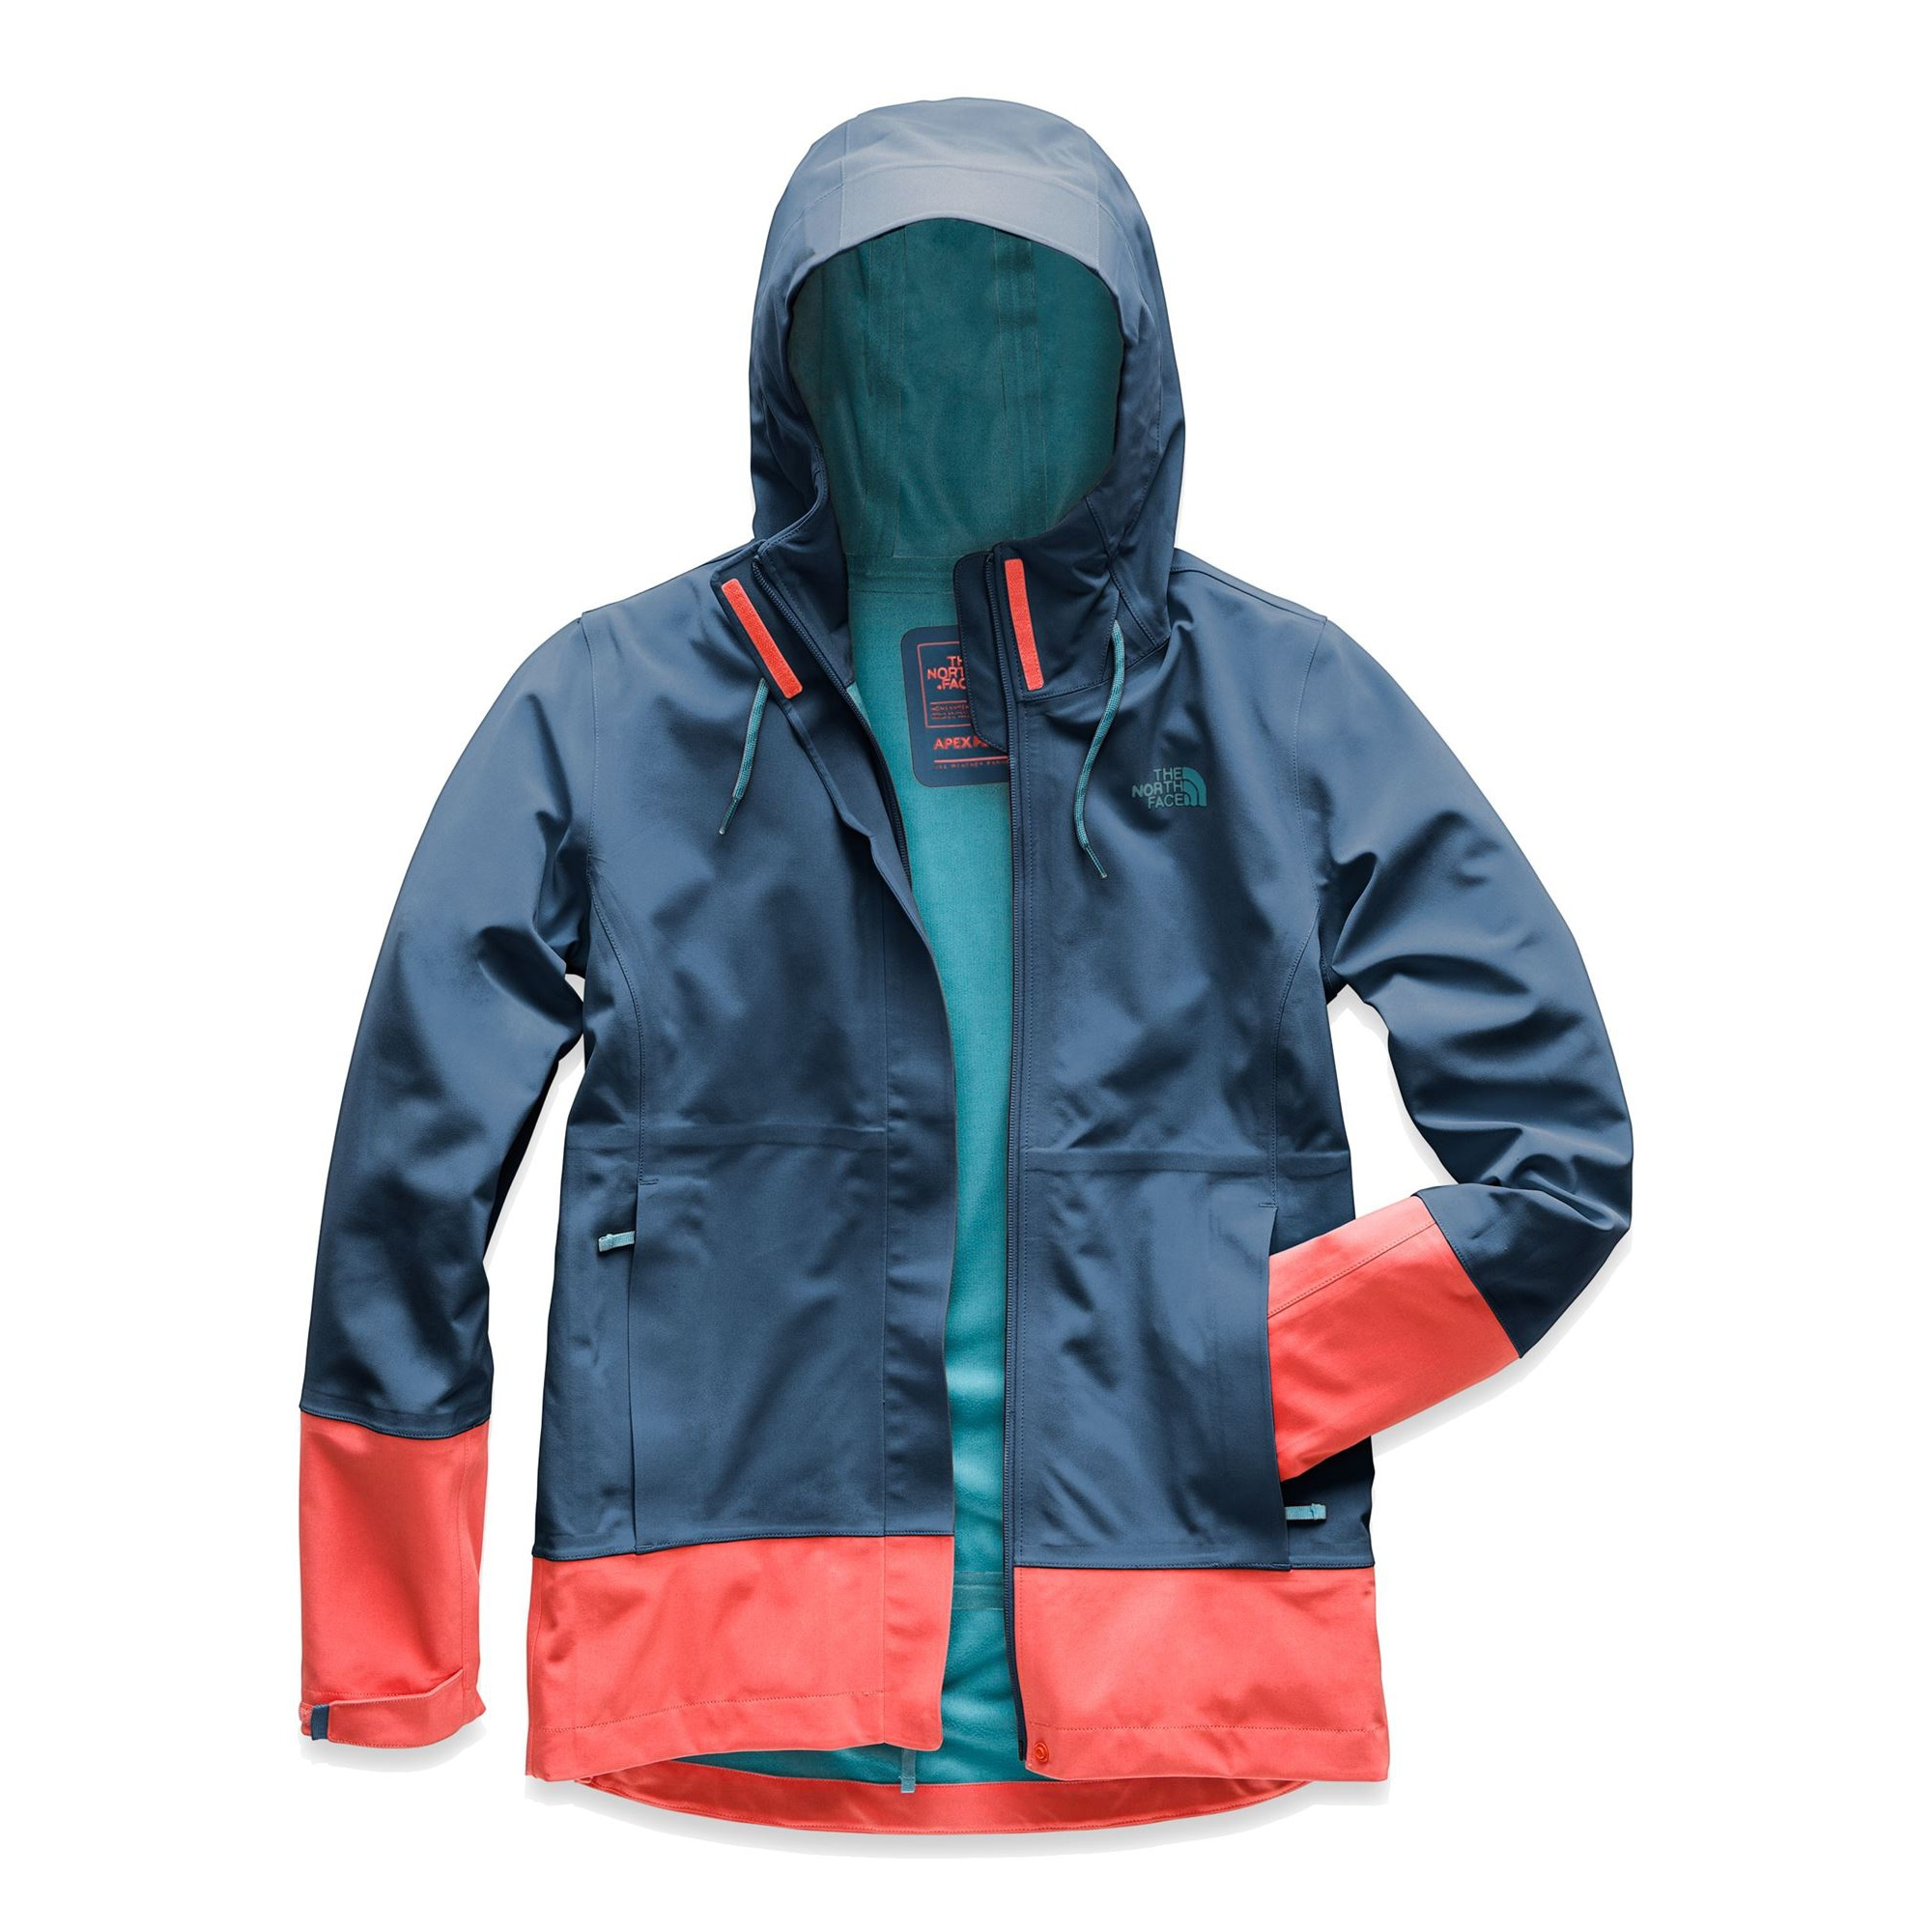 Apex Flex DryVent Jacket - Women's